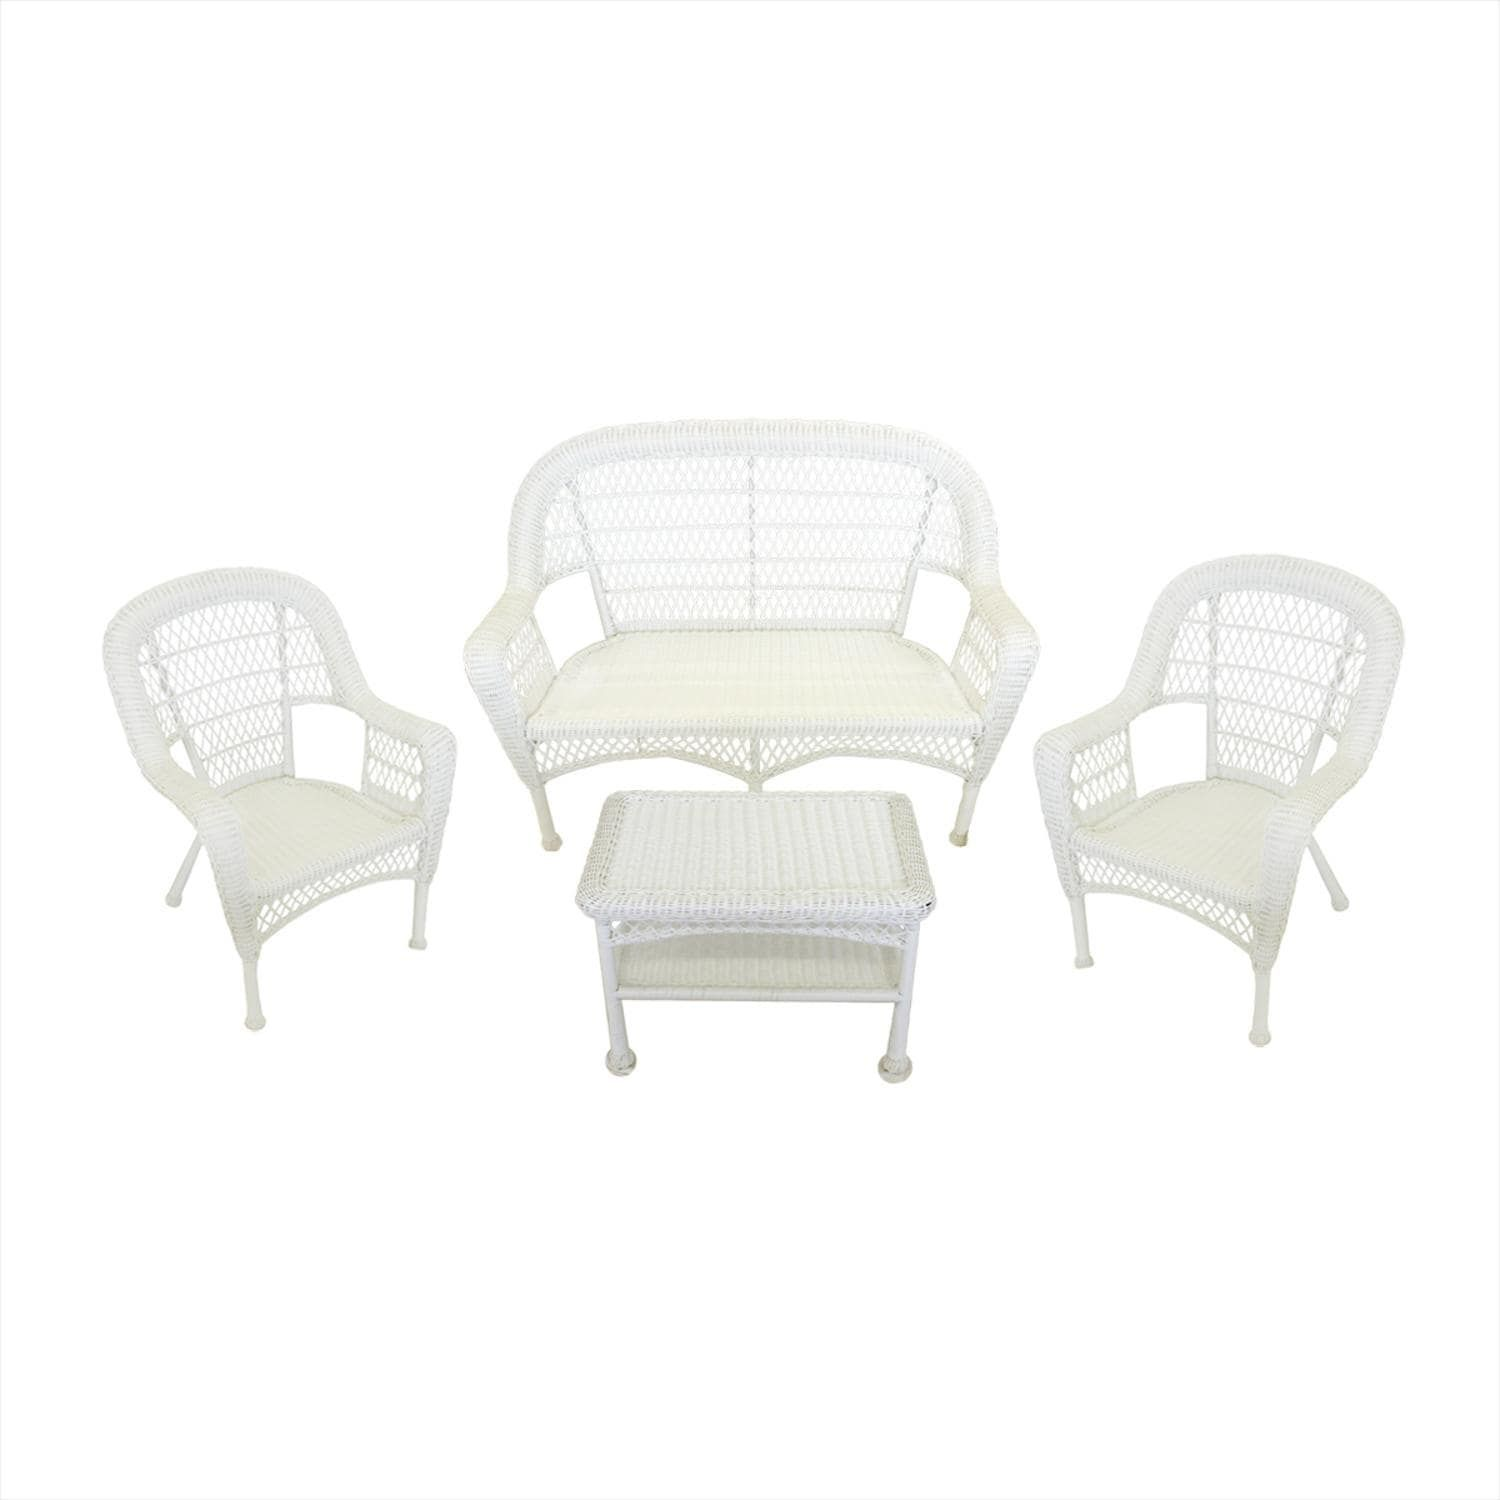 4 Piece White Resin Wicker Patio Furniture Set Loveseat 2